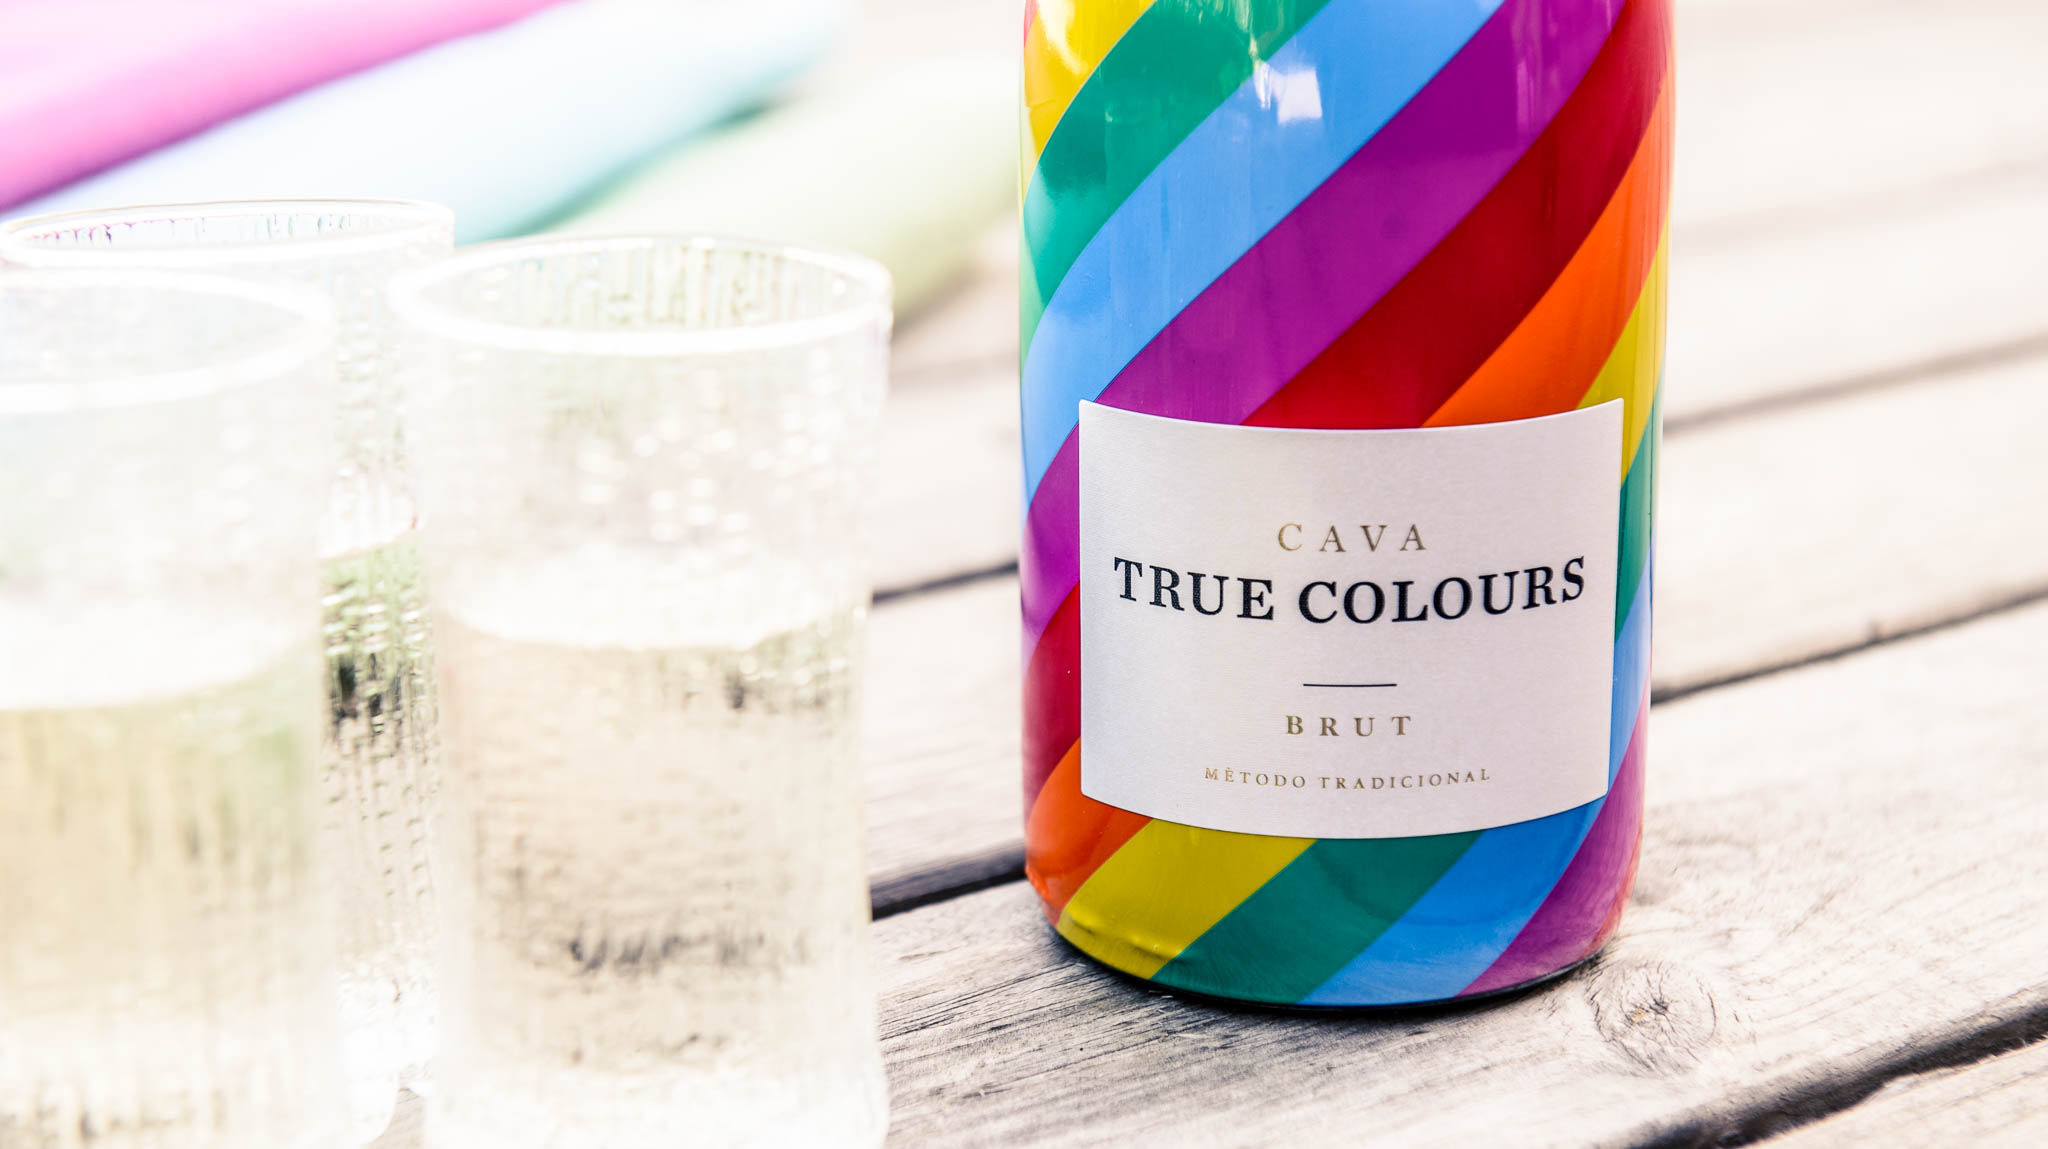 True colours cava with Ultima thule glasses from side